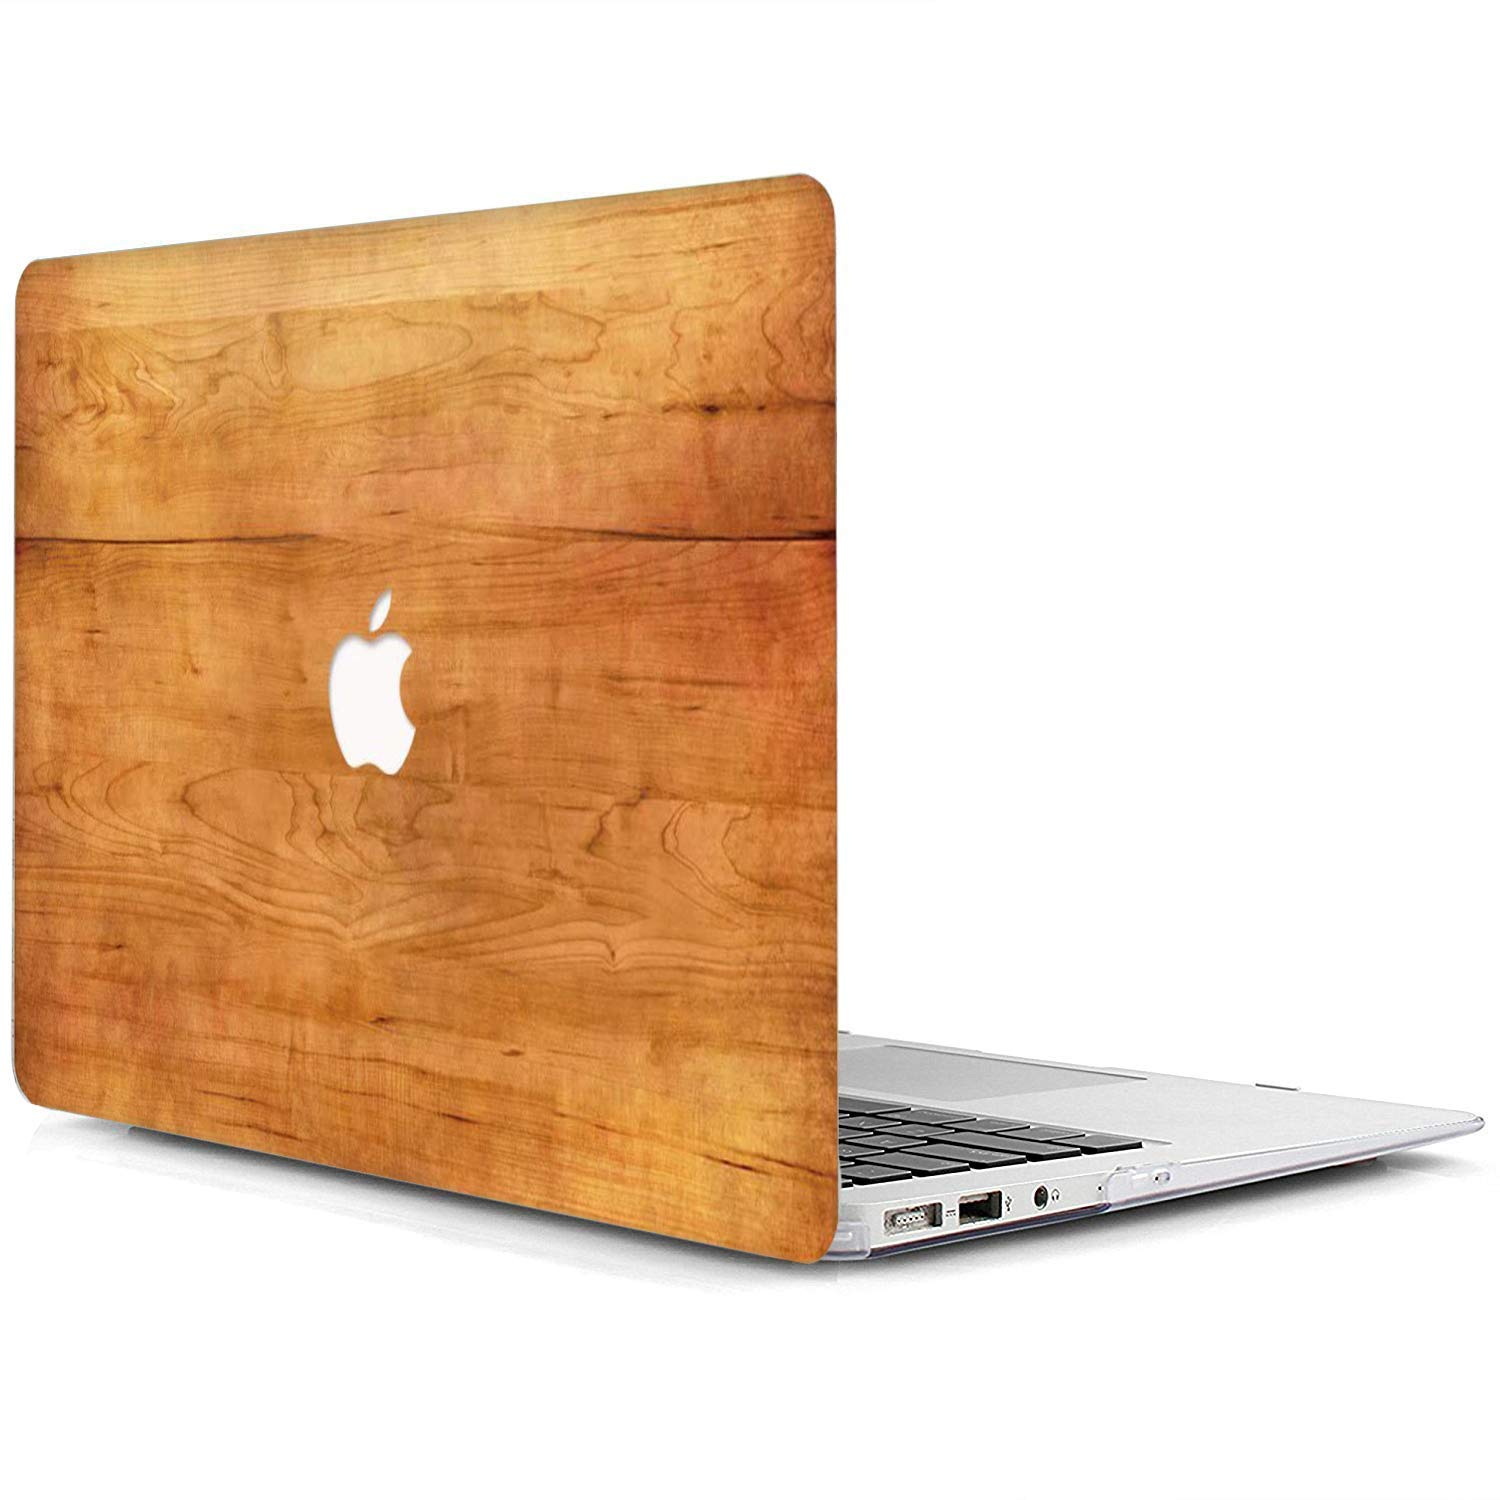 MW393 Brown Wood Grain MacBook Pro 13 Case A1989//A1706//A1708,AJYX Plastic Wood Pattern Laptop Hard Case Shell Cover Compatible Newest Macbook Pro 13 Inch with//without Touch Bar and Touch ID